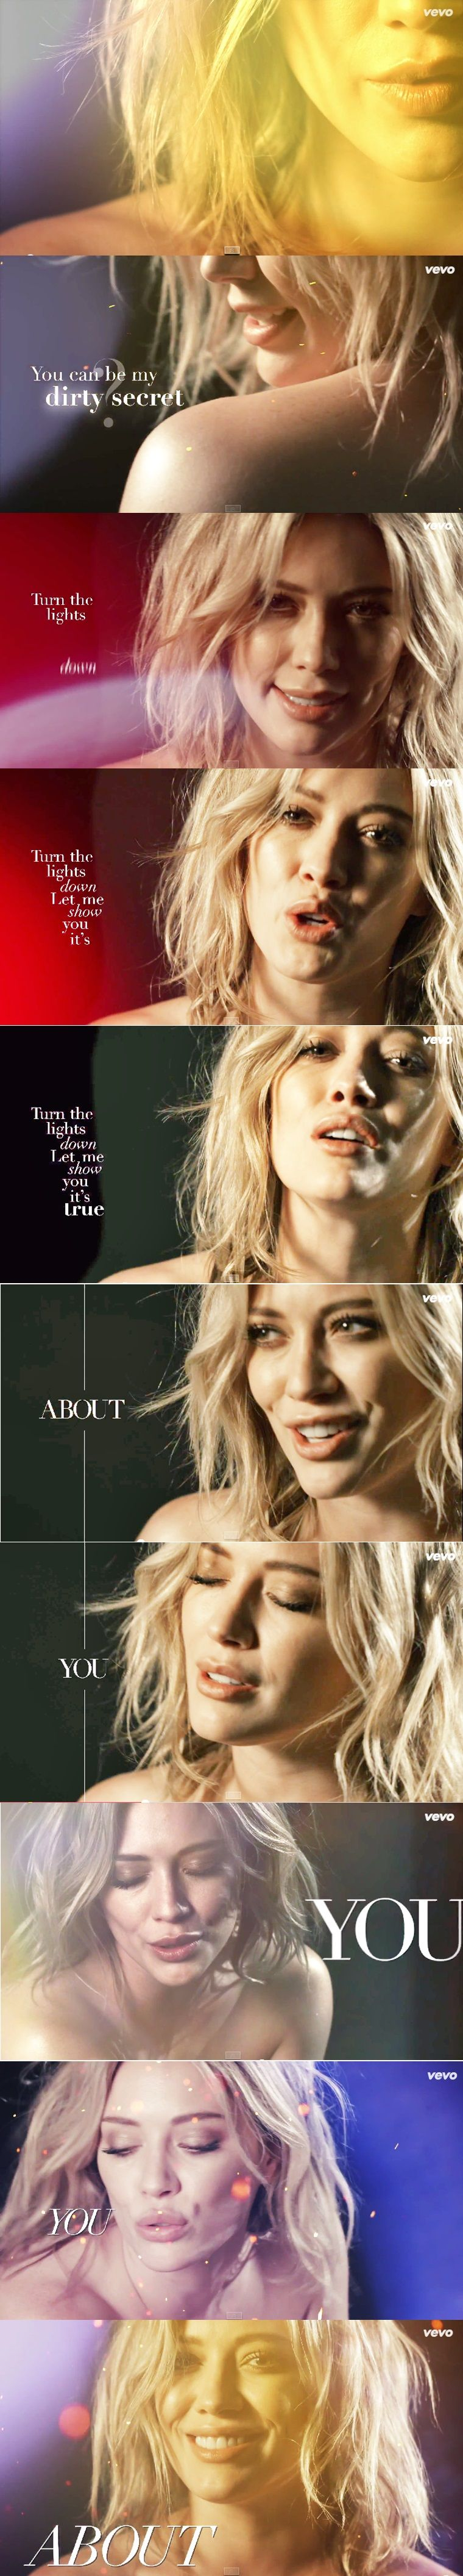 "We are ""all about"" Hilary Duff on #NOW52 #WhatsNext"